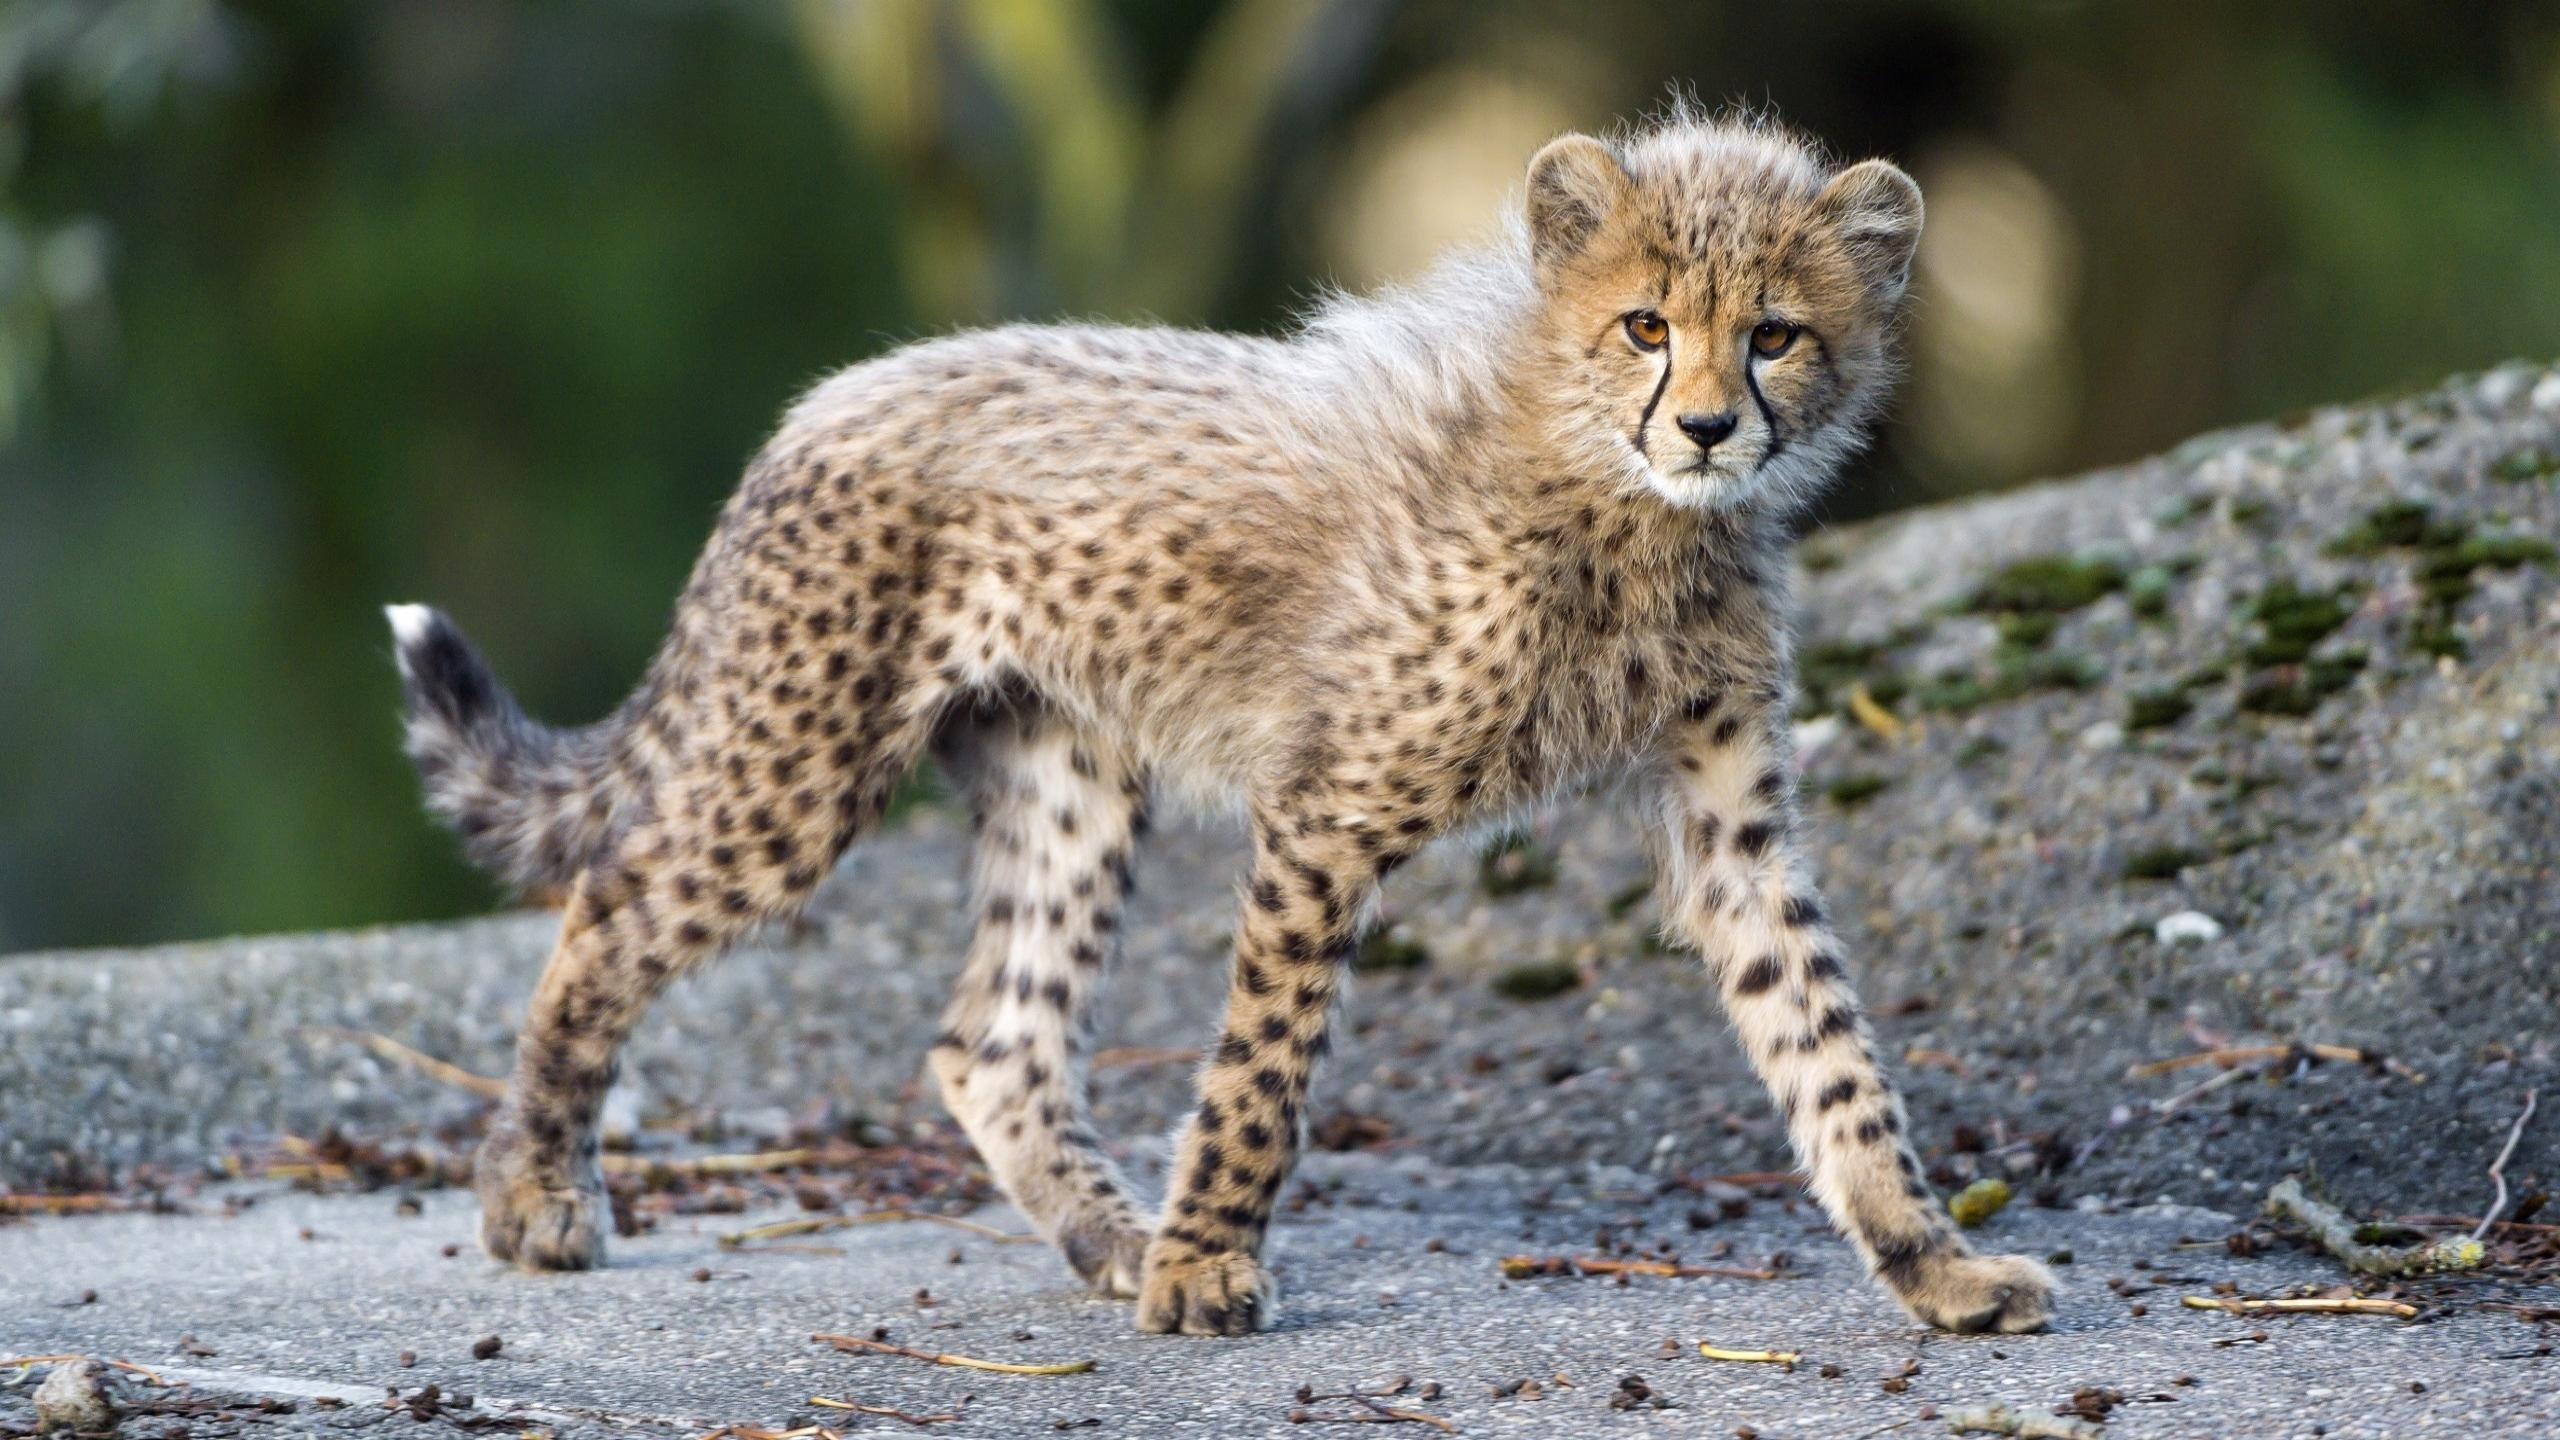 Cheetah wallpapers 2560x1440 desktop backgrounds